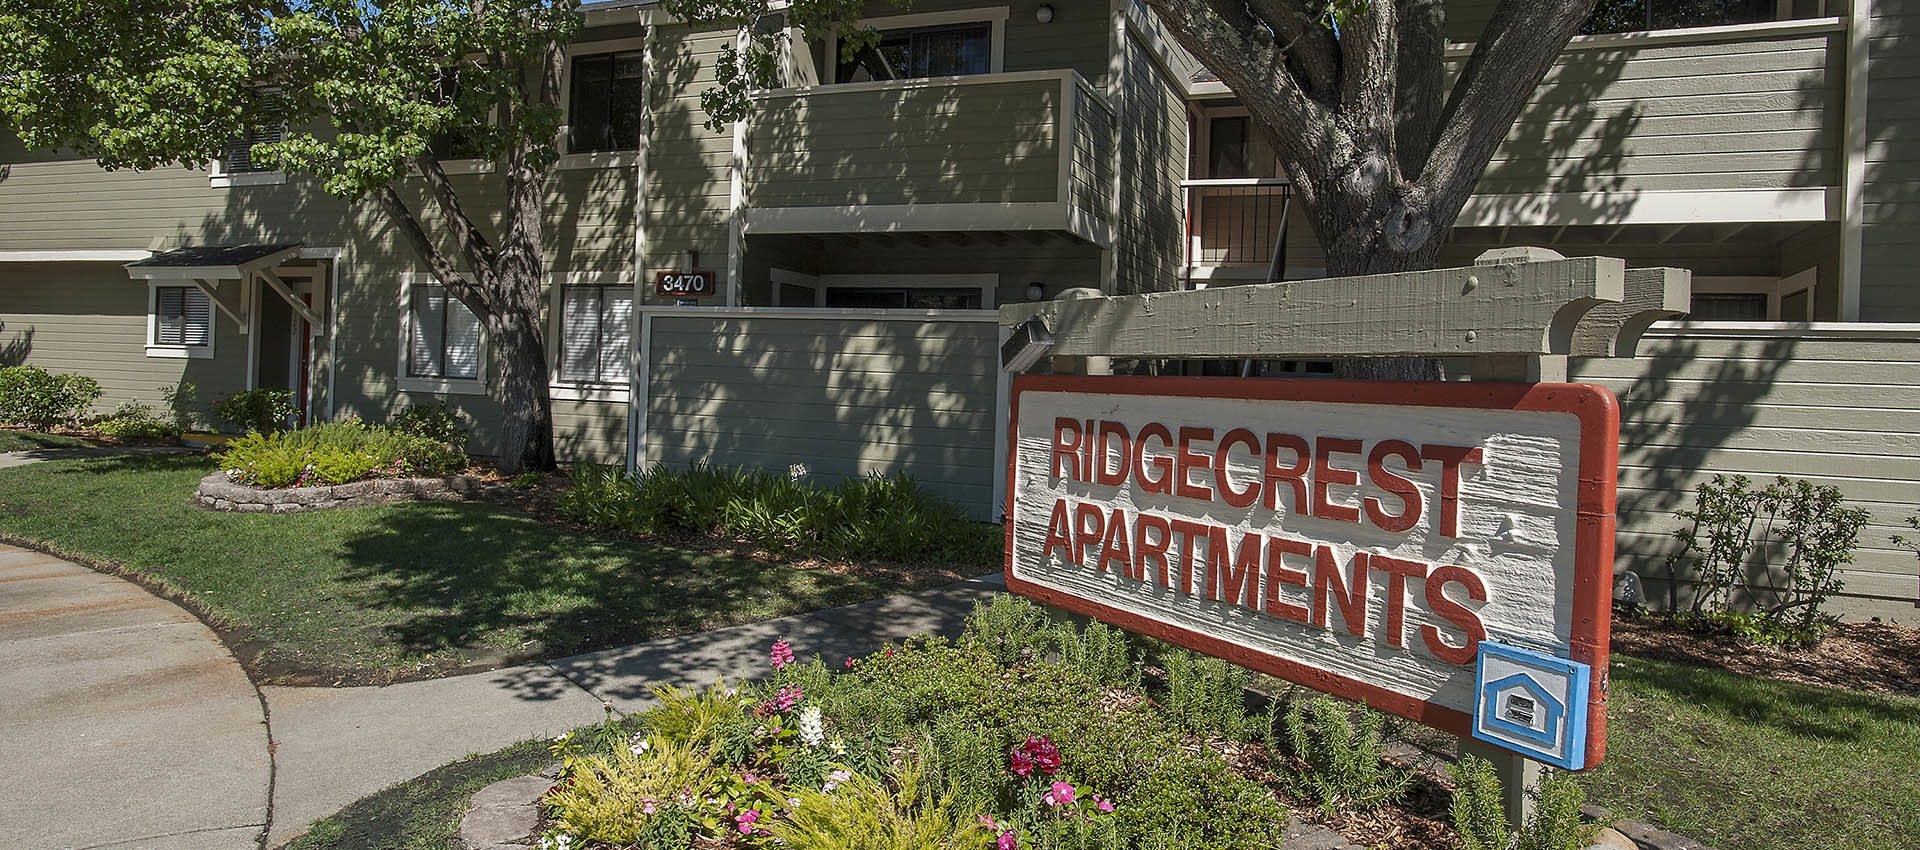 Signage at Ridgecrest Apartment Homes in Martinez, CA